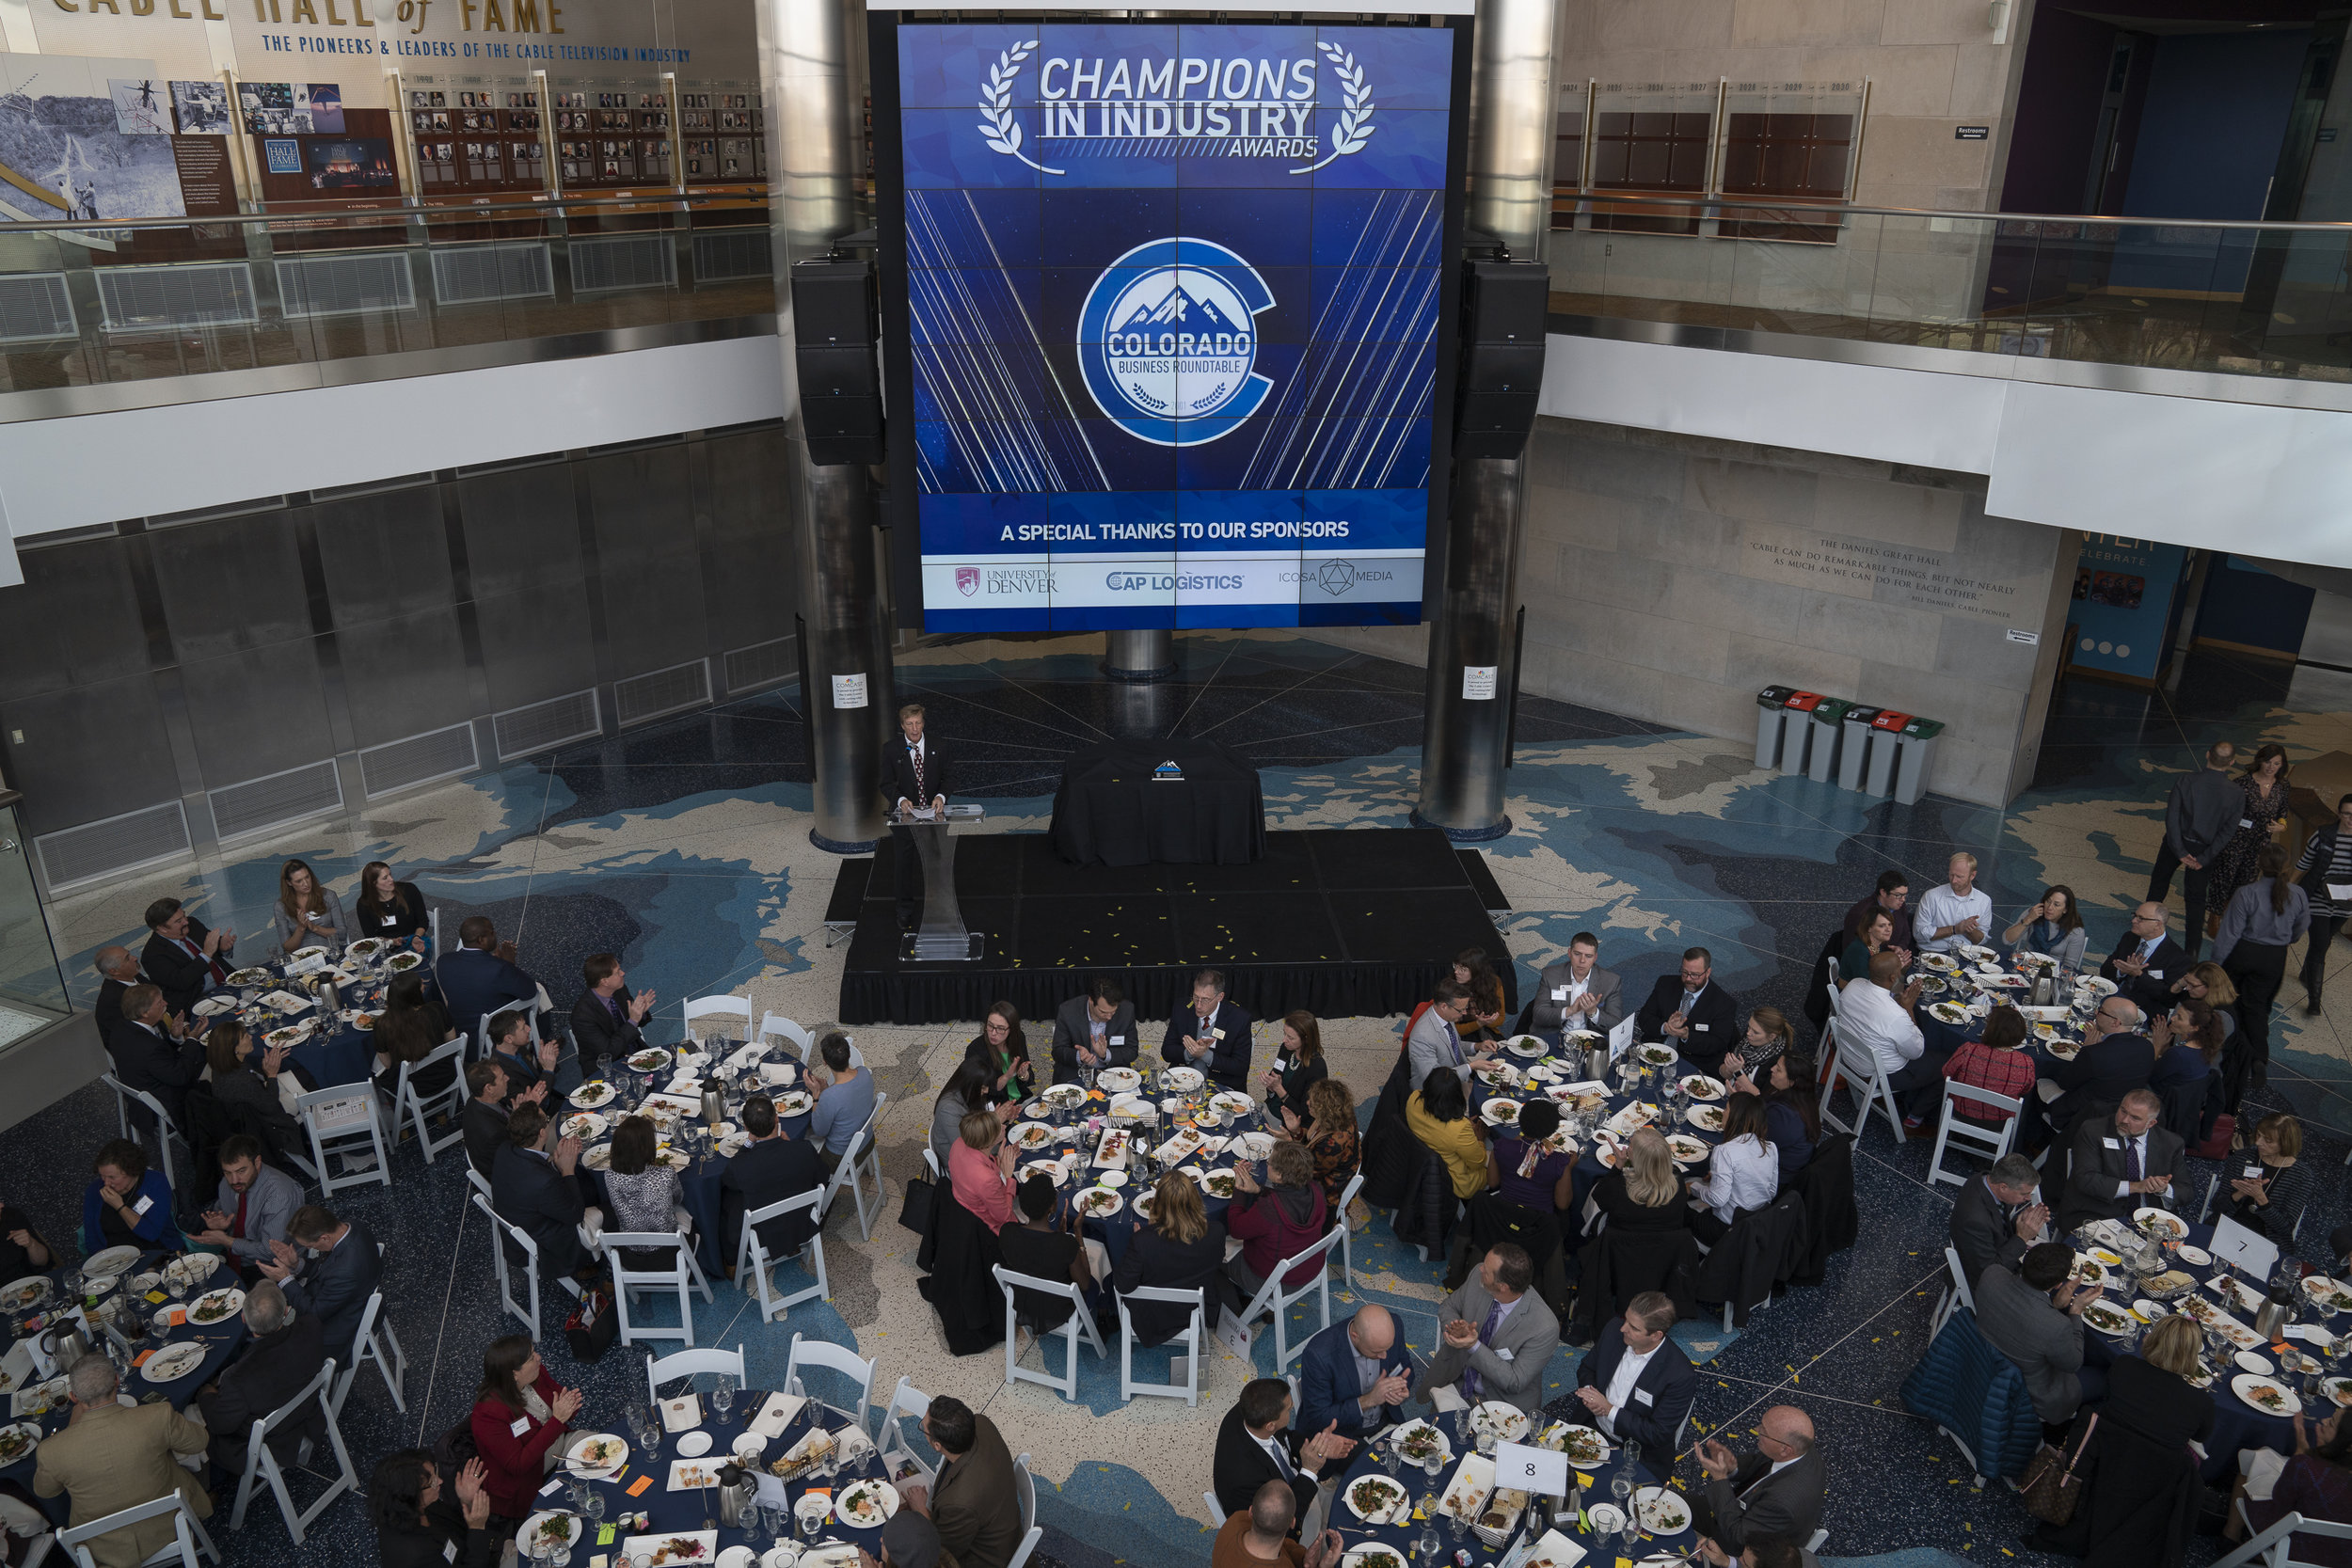 Champions in Industry Awards Luncheon